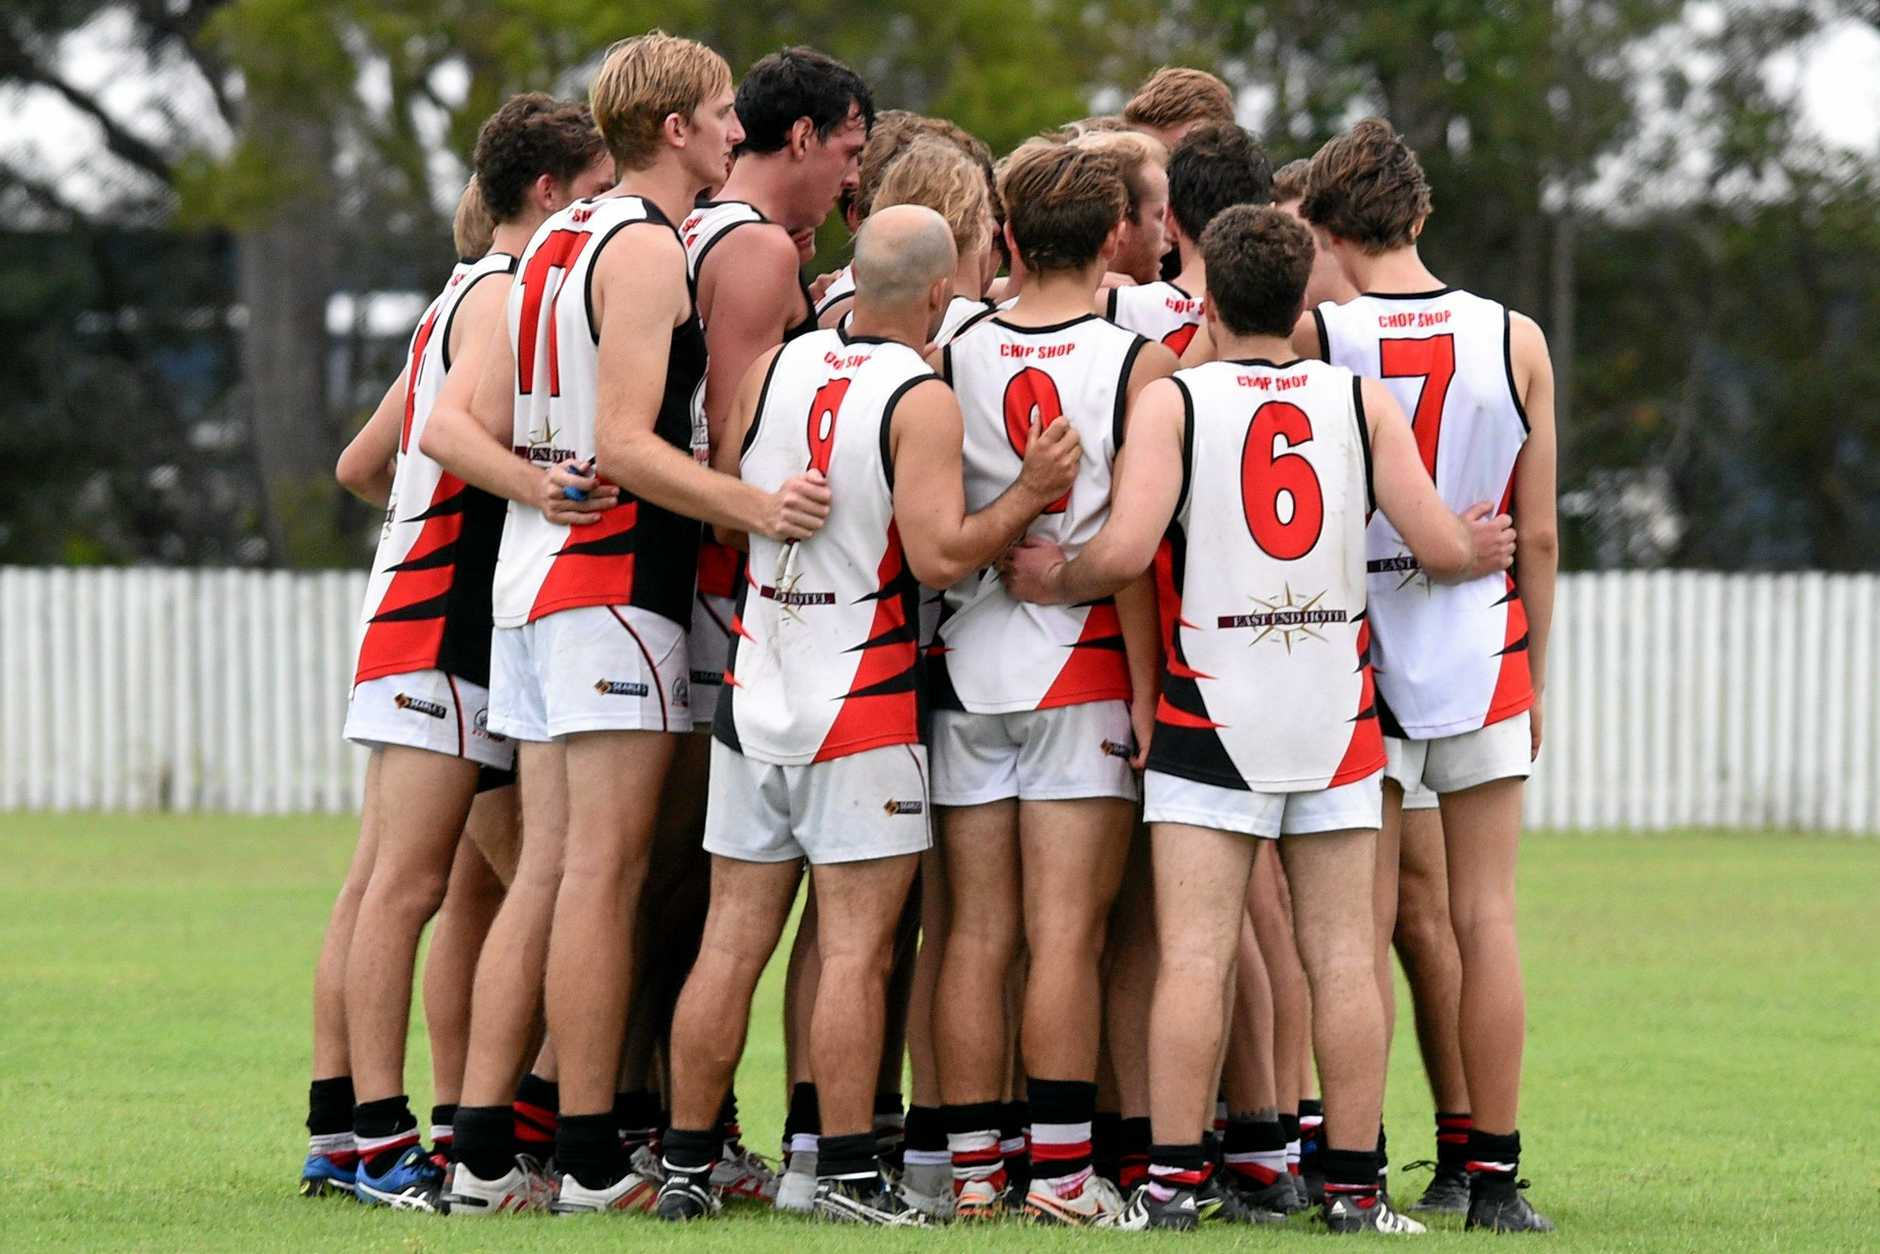 The Brothers Bulldogs at Keith Dunne Oval earlier this year. The side must win today to stay alive in the finals.